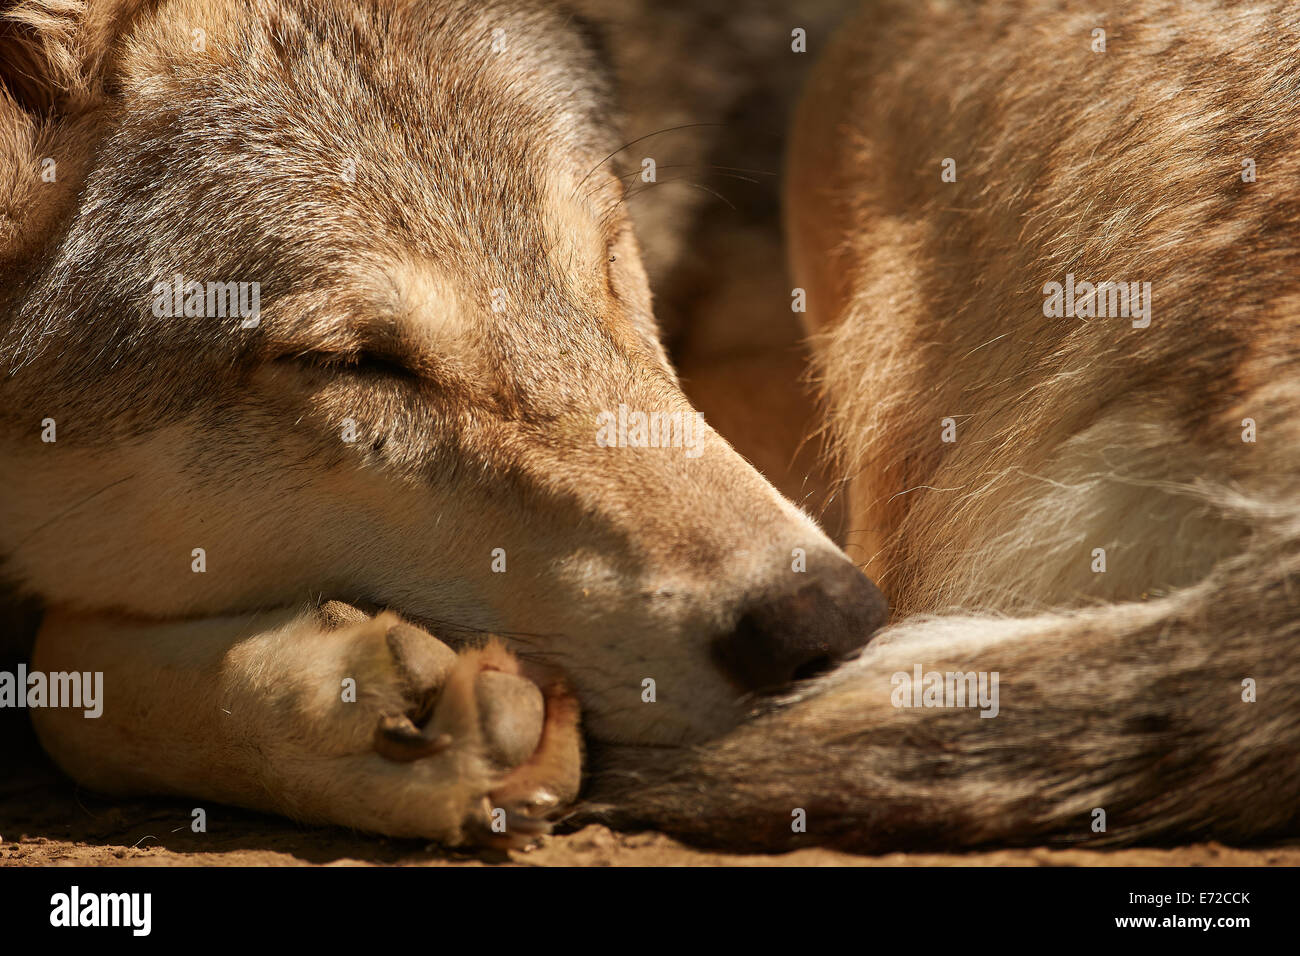 A sleeping Gray or Grey Wolf (Canis lupus) - Stock Image